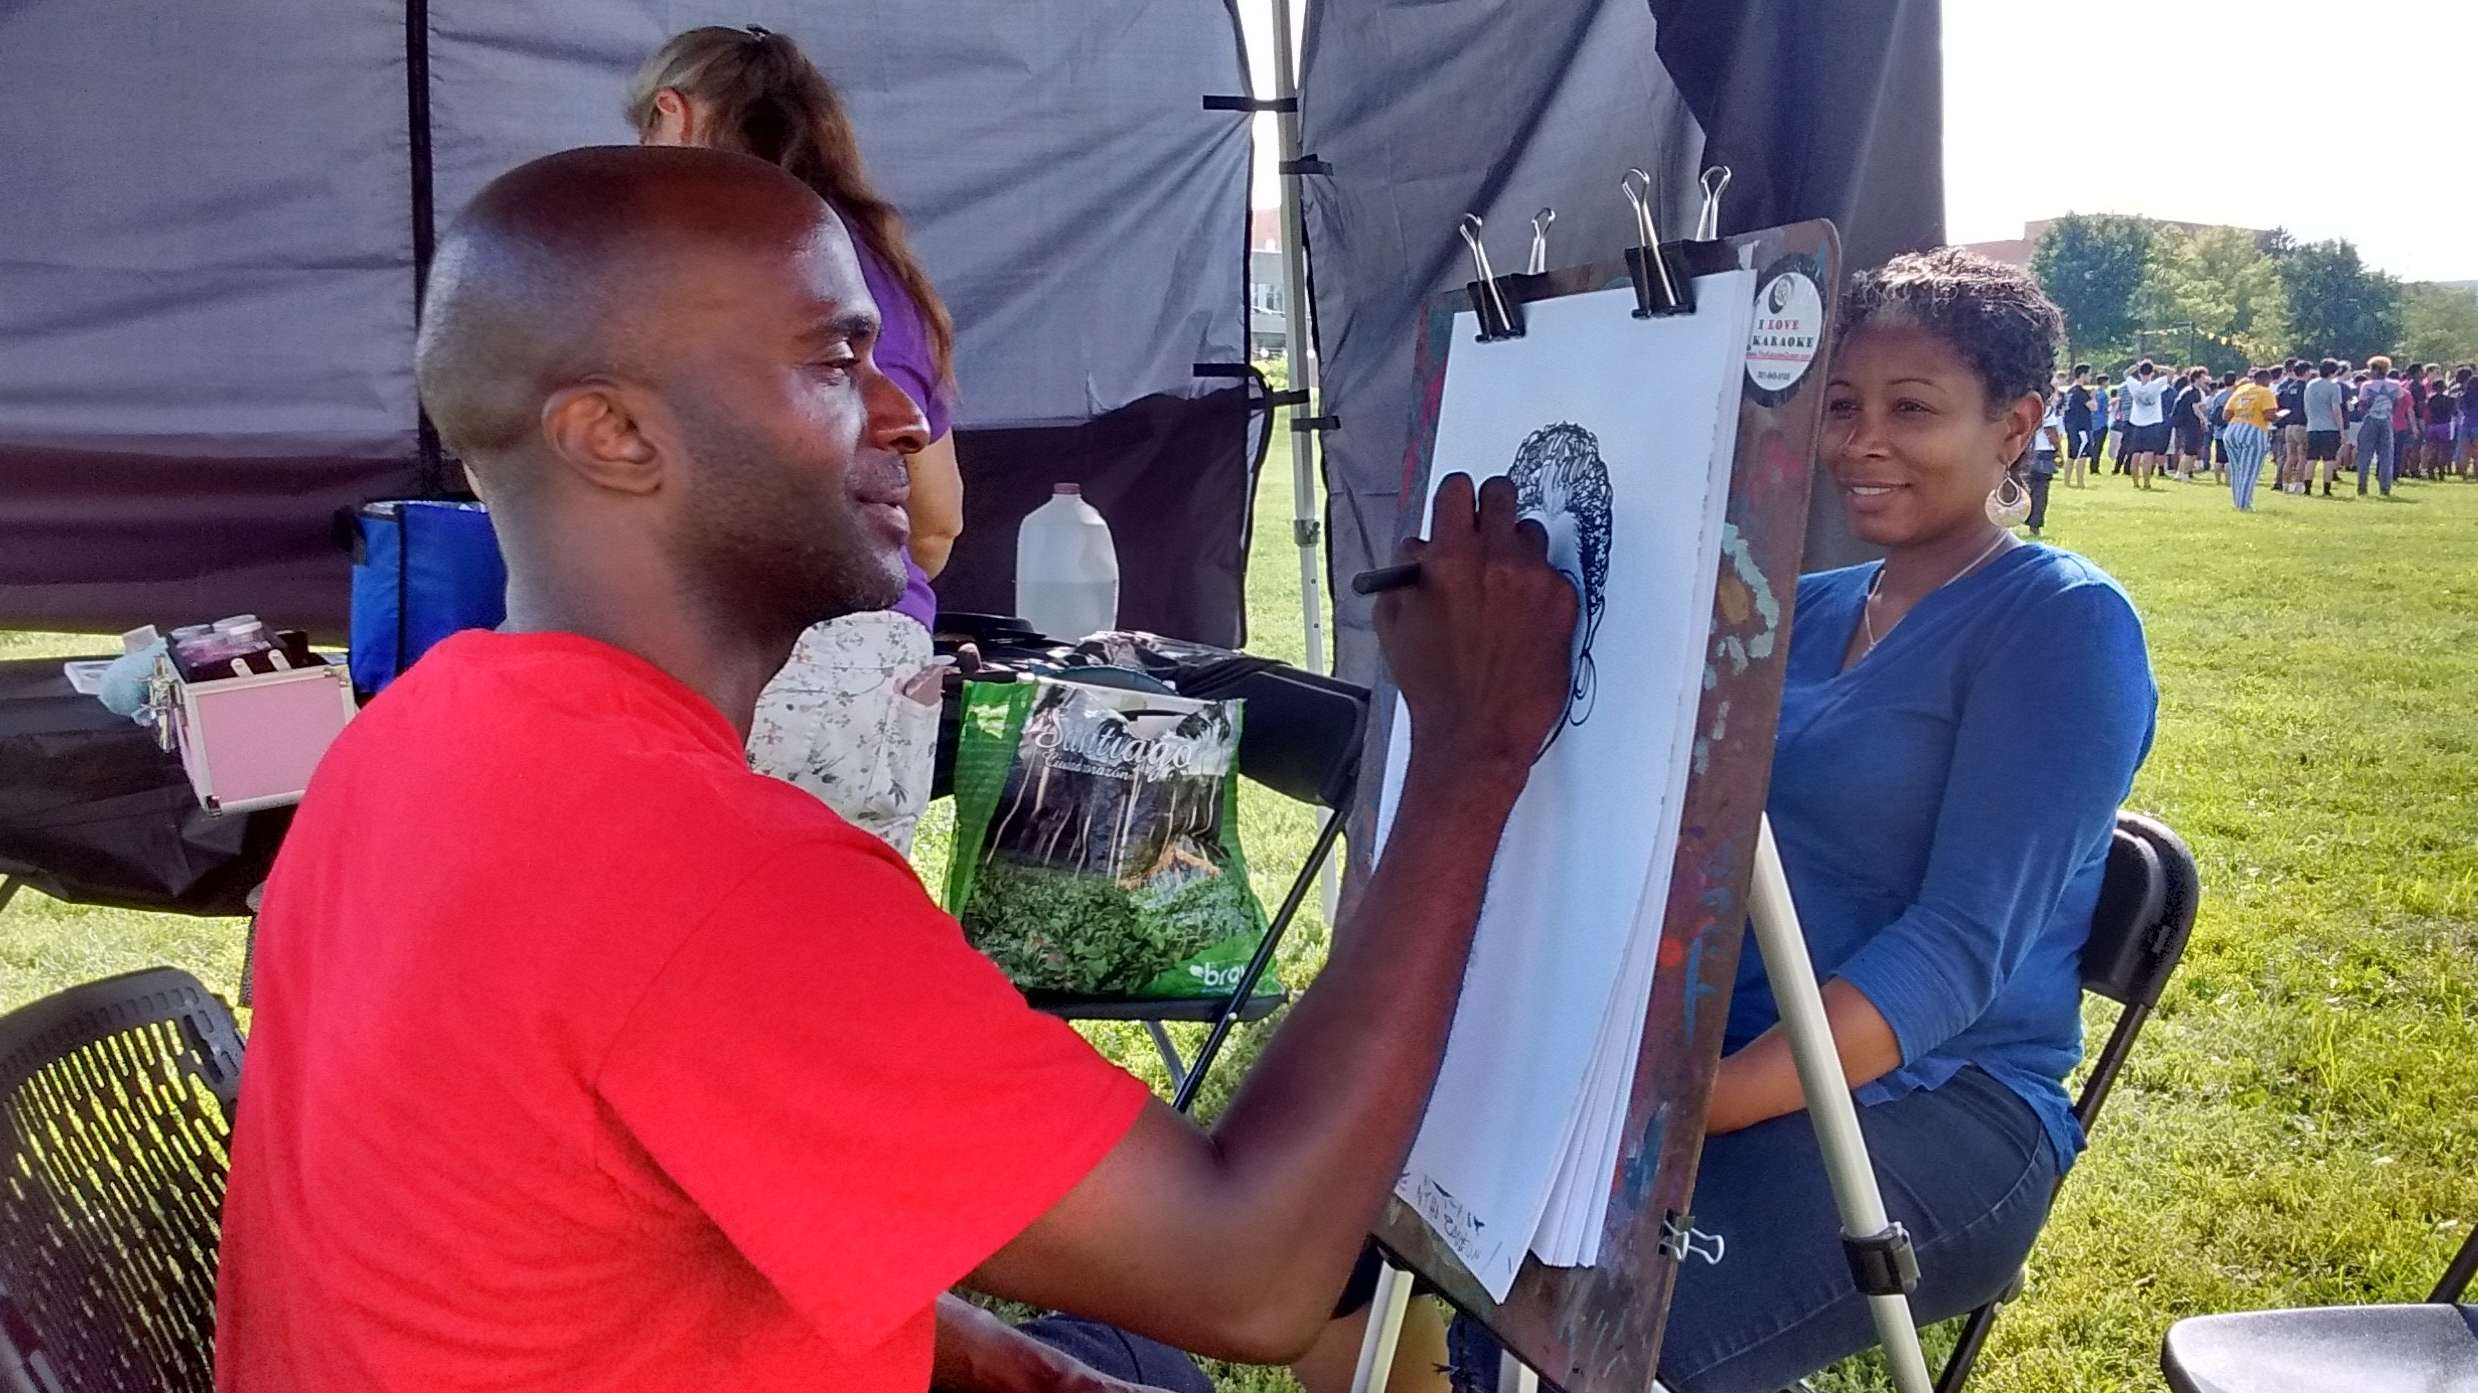 Let our caricature artists bring the fun to your next event!